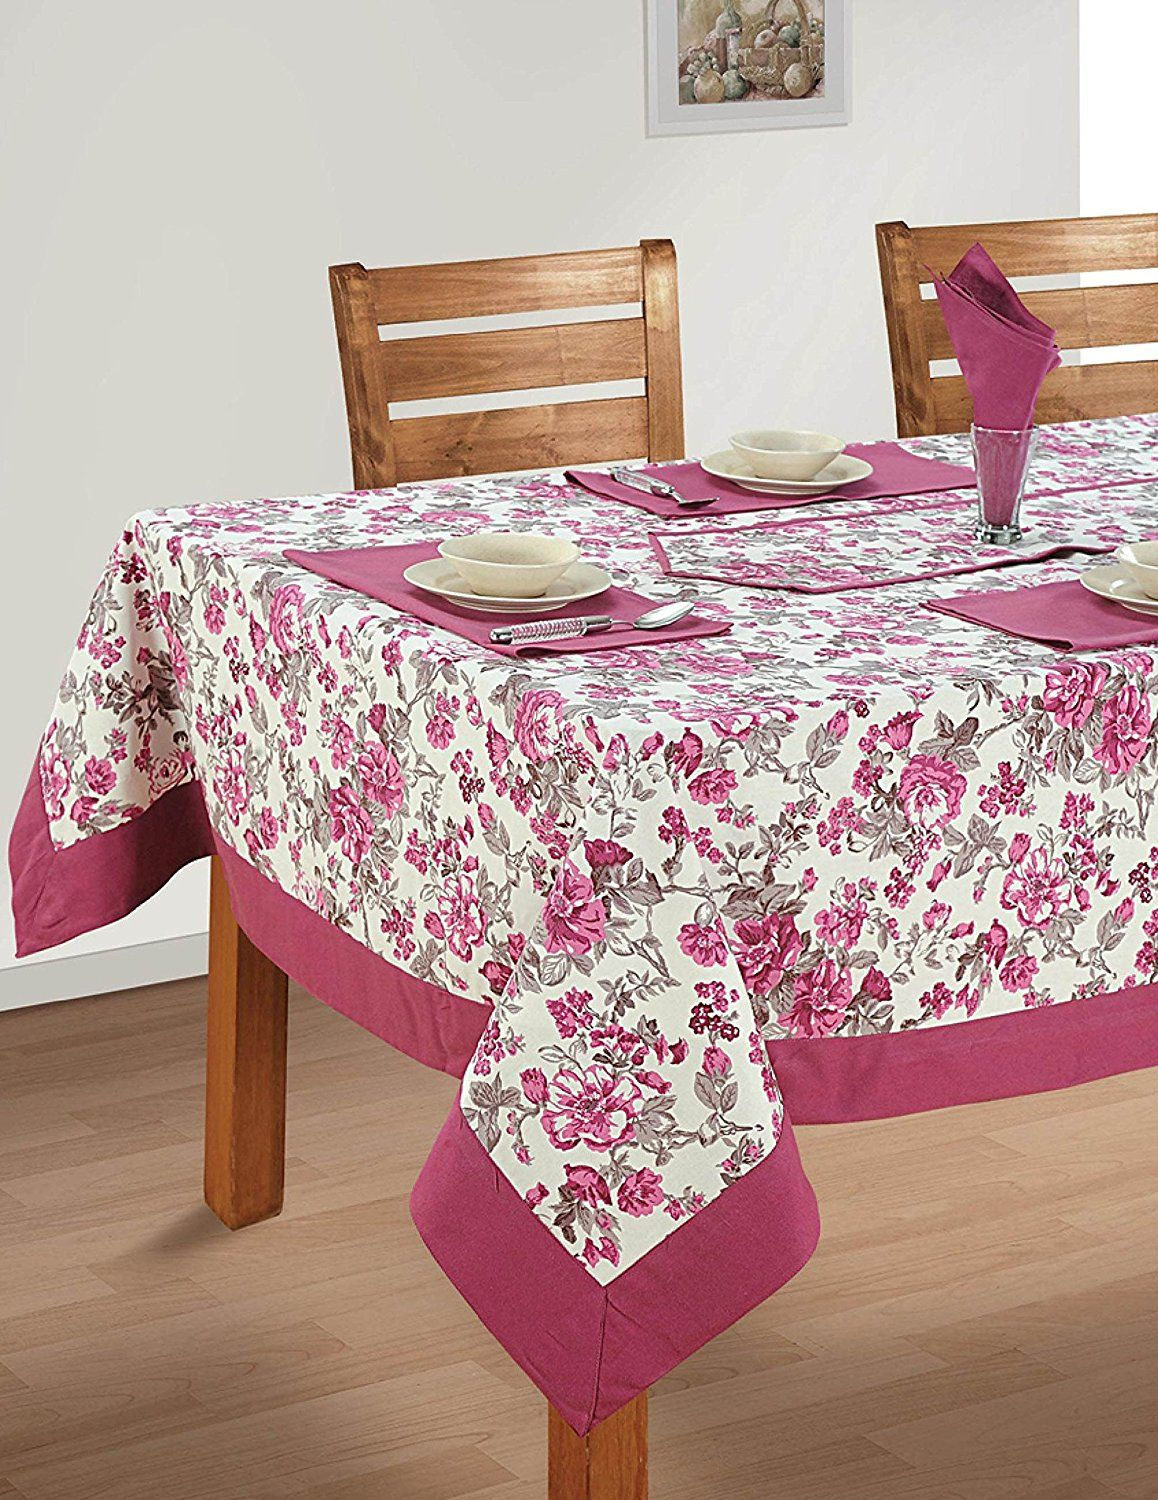 Colorful Multicolor Cotton Spring Floral Tablecloths Tables 60 X 102 Inches Deep Puce Border Click Image For M Dining Table Cloth Table Cloth Table Linens